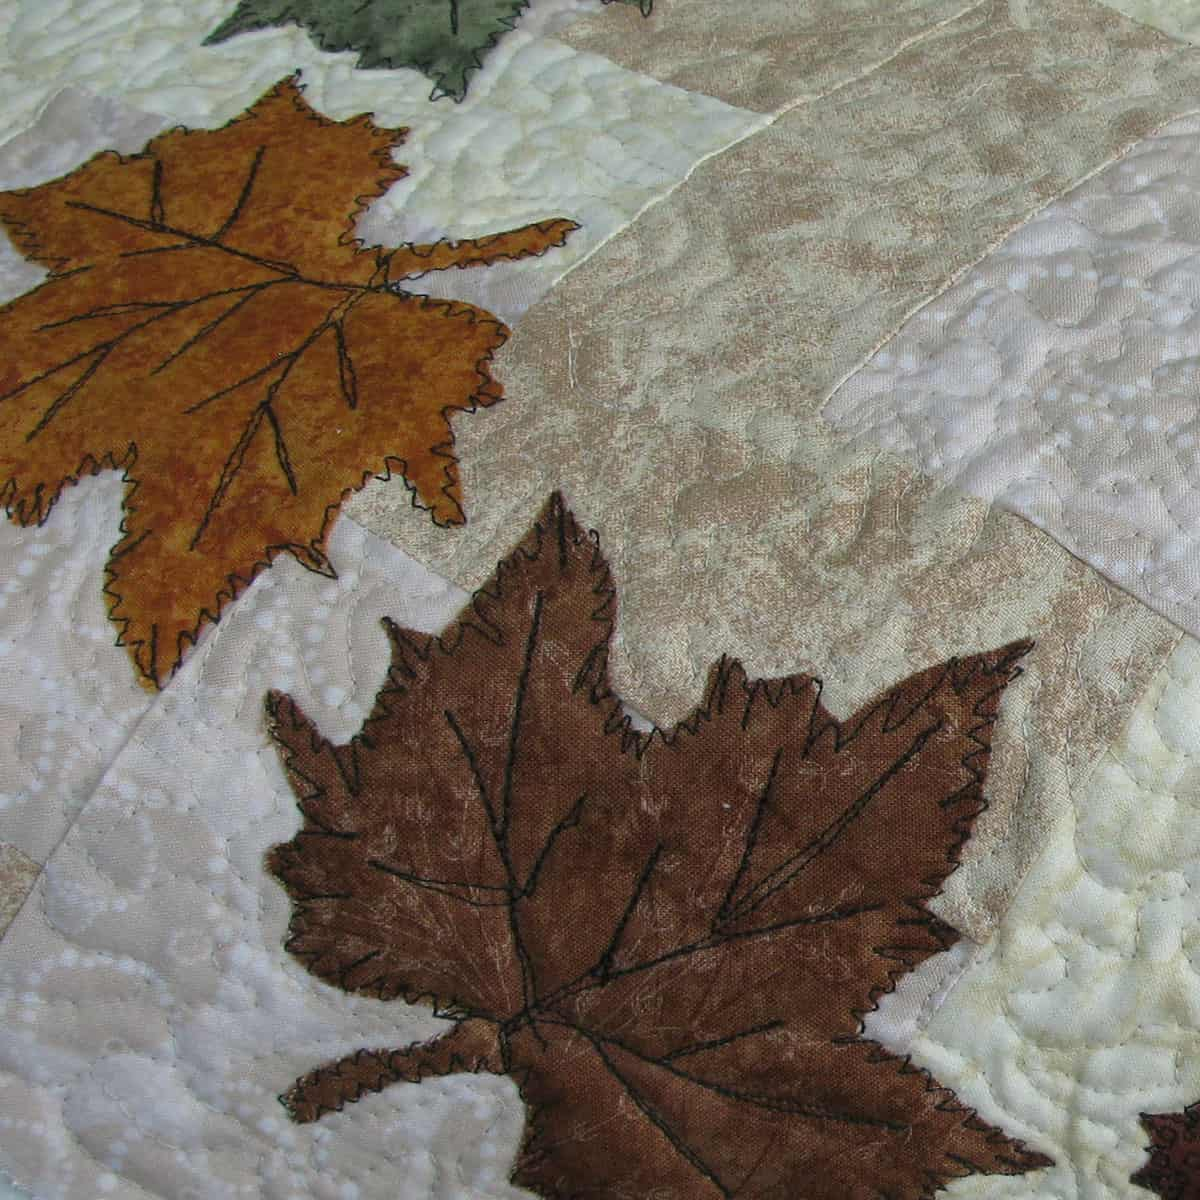 Closeup of the stitching on the leaves